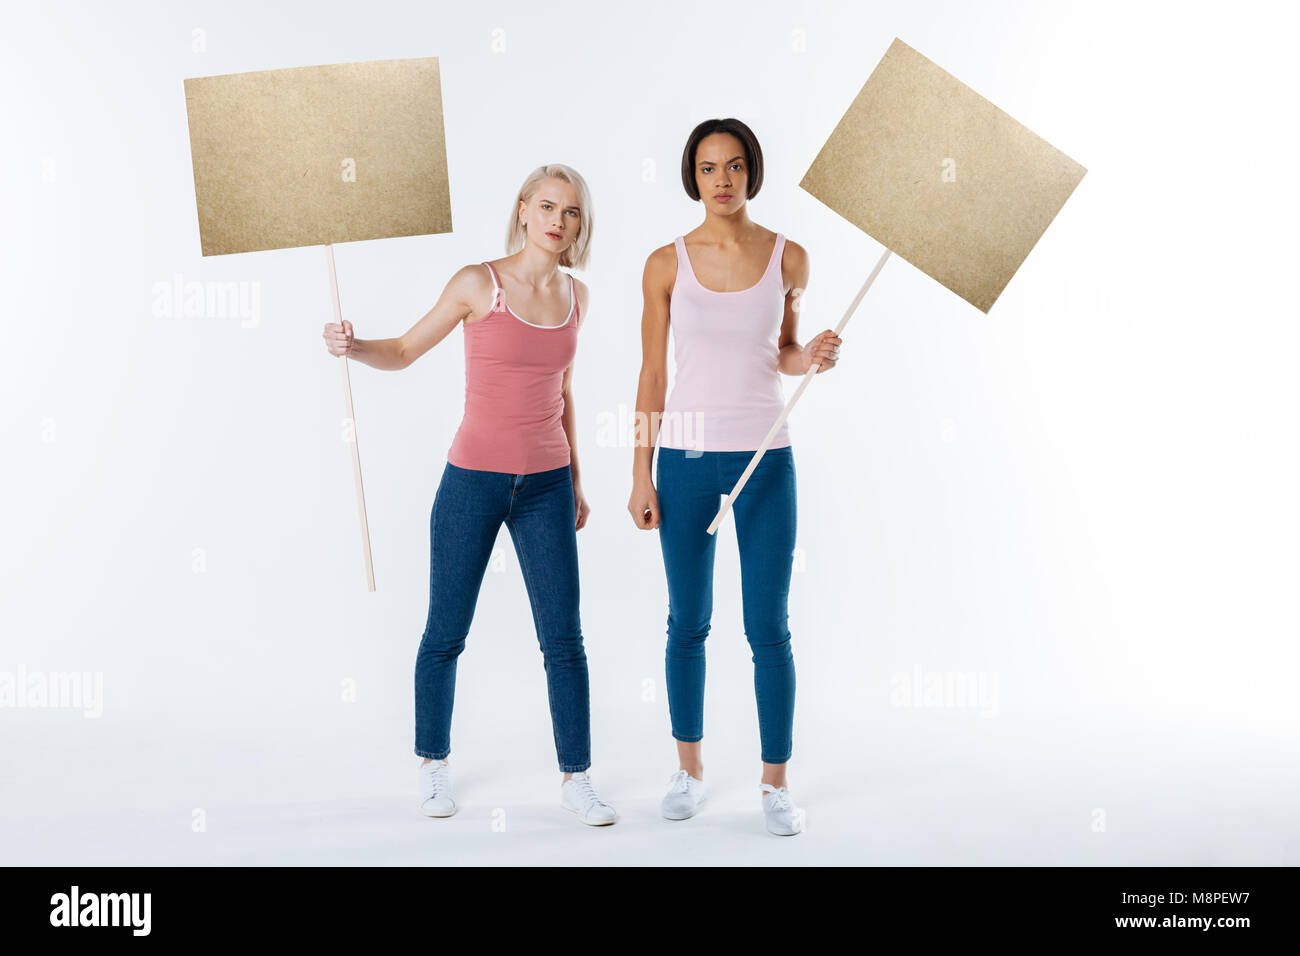 Nice pleasant women standing together - Stock Image